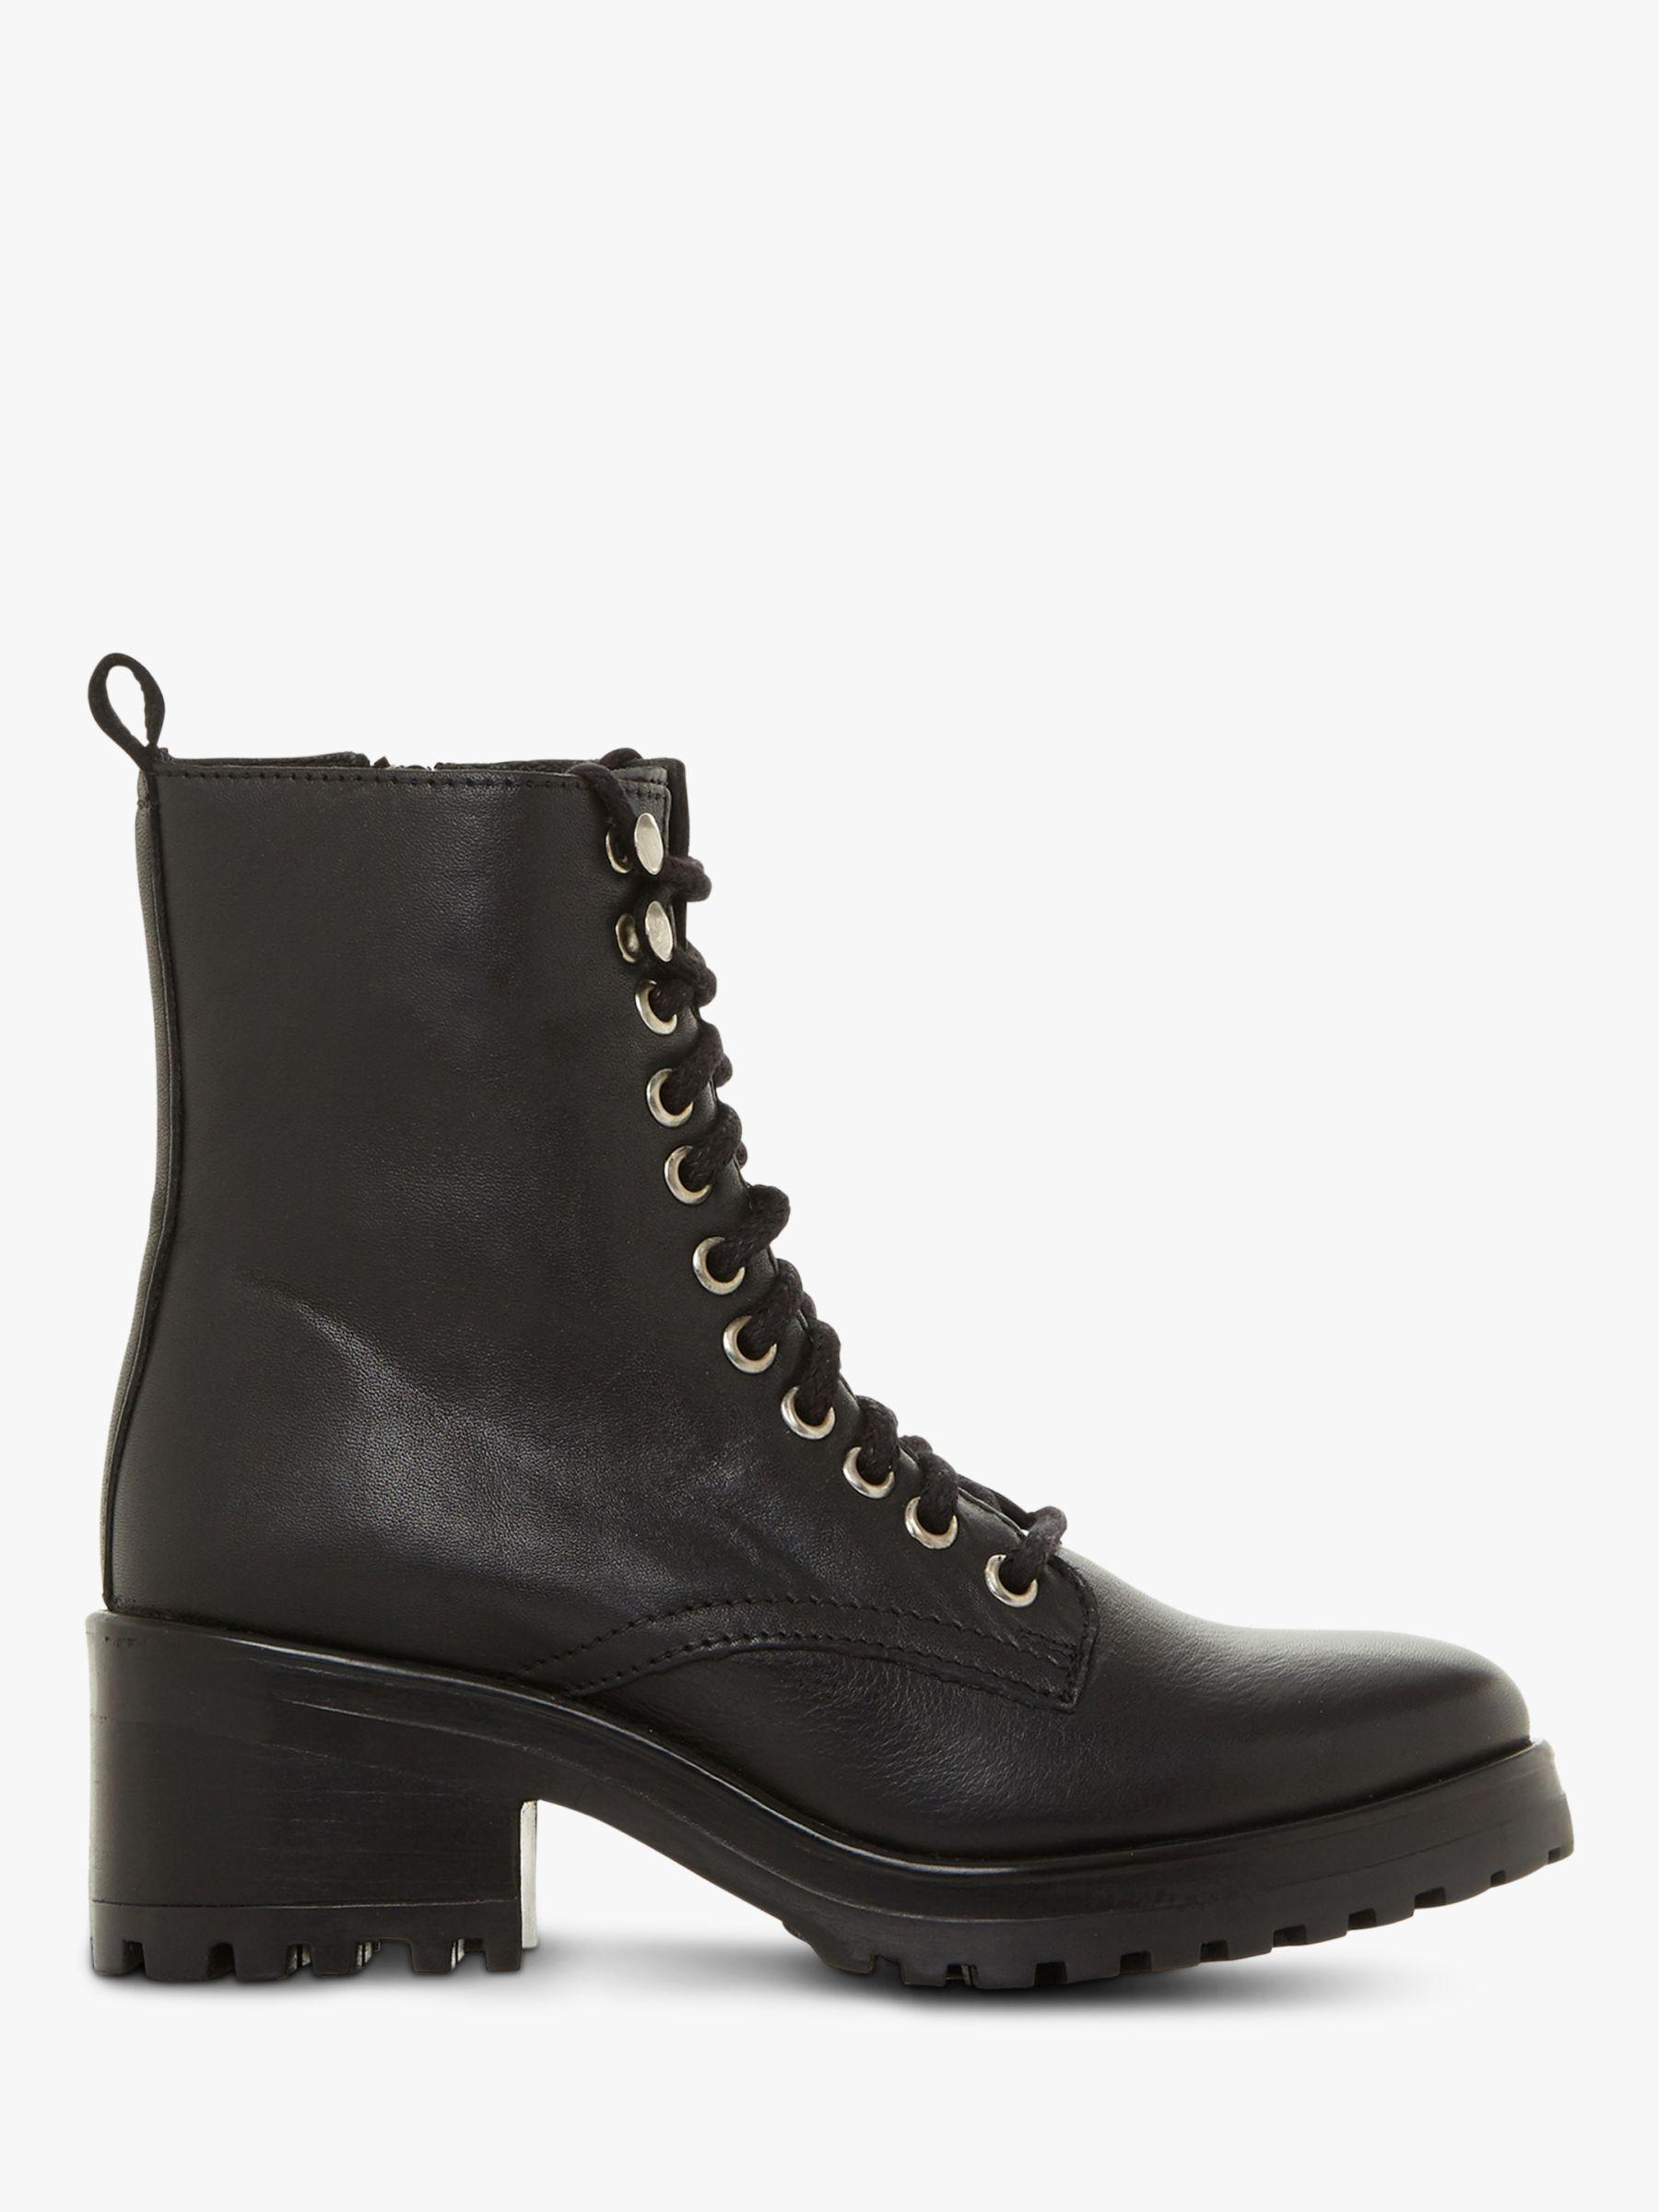 8a5db4276f9 Steve Madden Geneva Block Heel Lace Up Ankle Boots in Black - Lyst